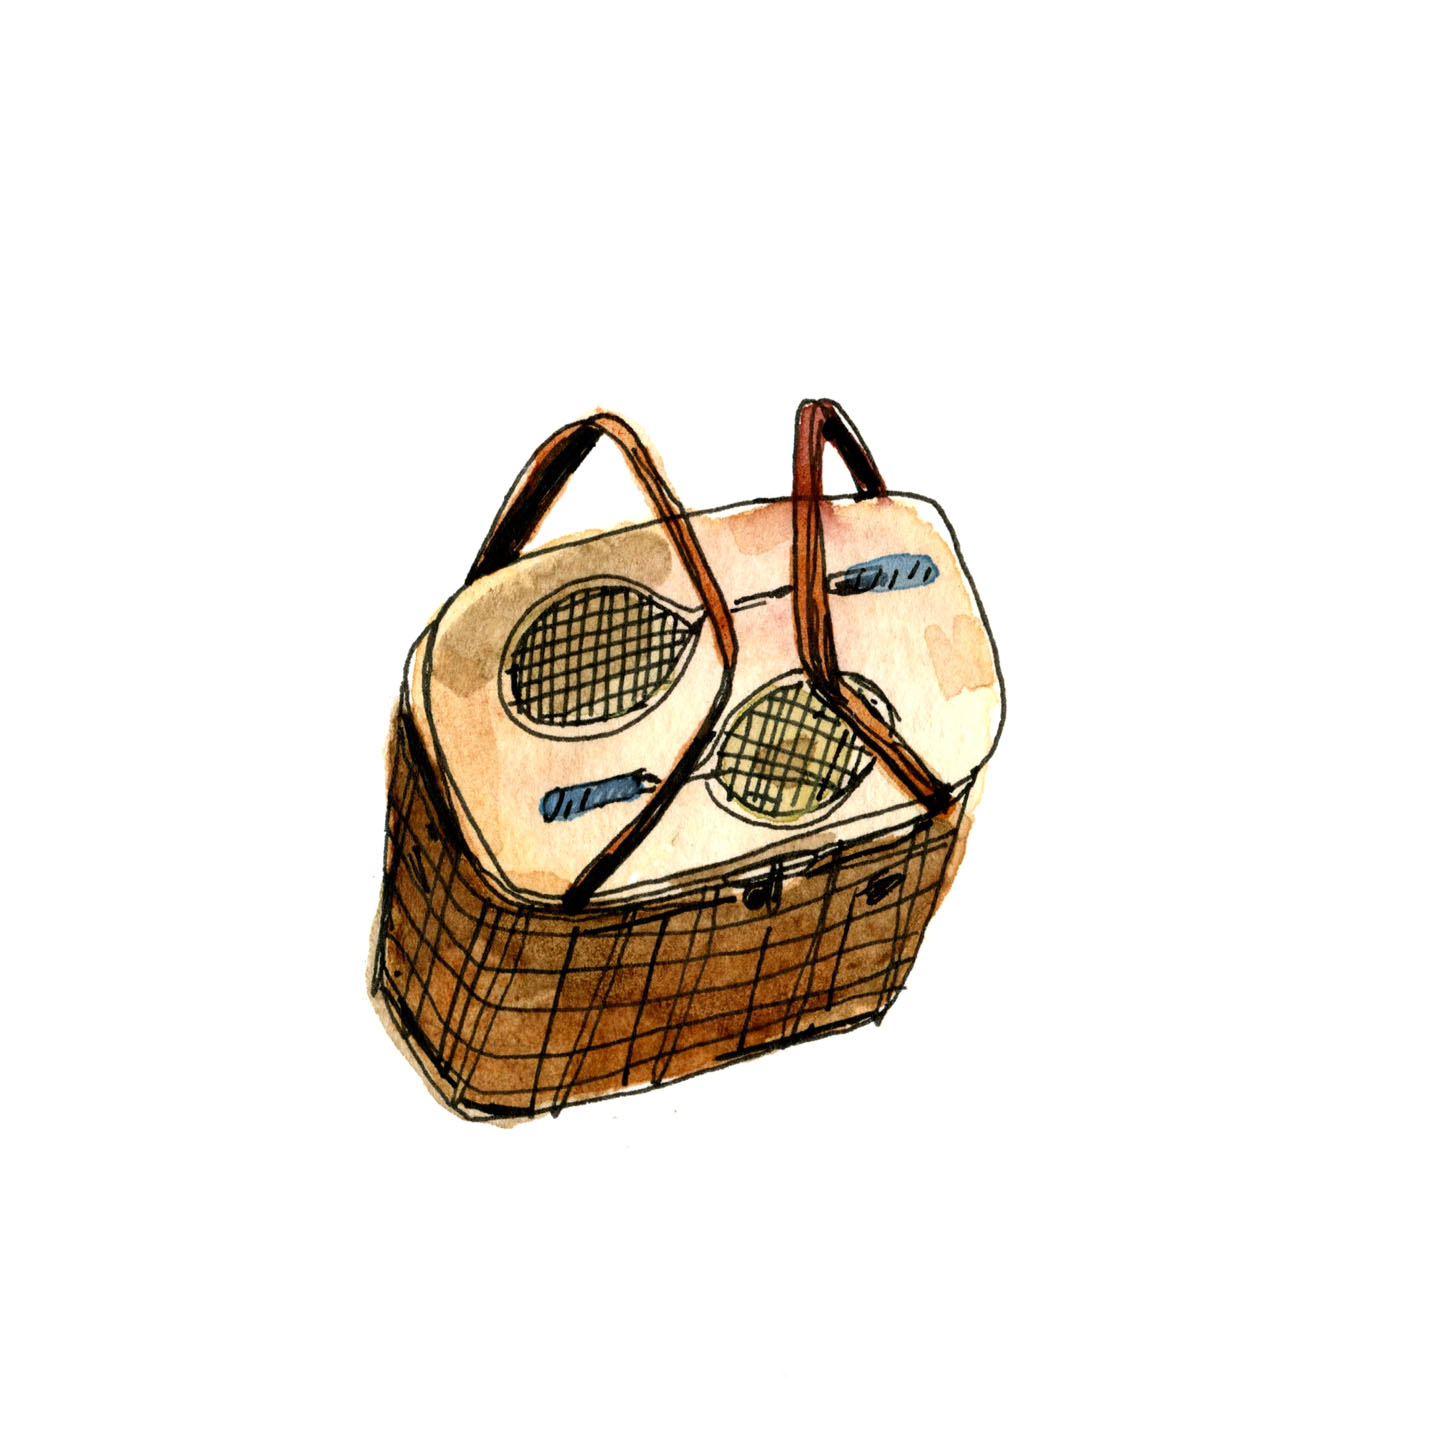 tennis basket bag.jpg